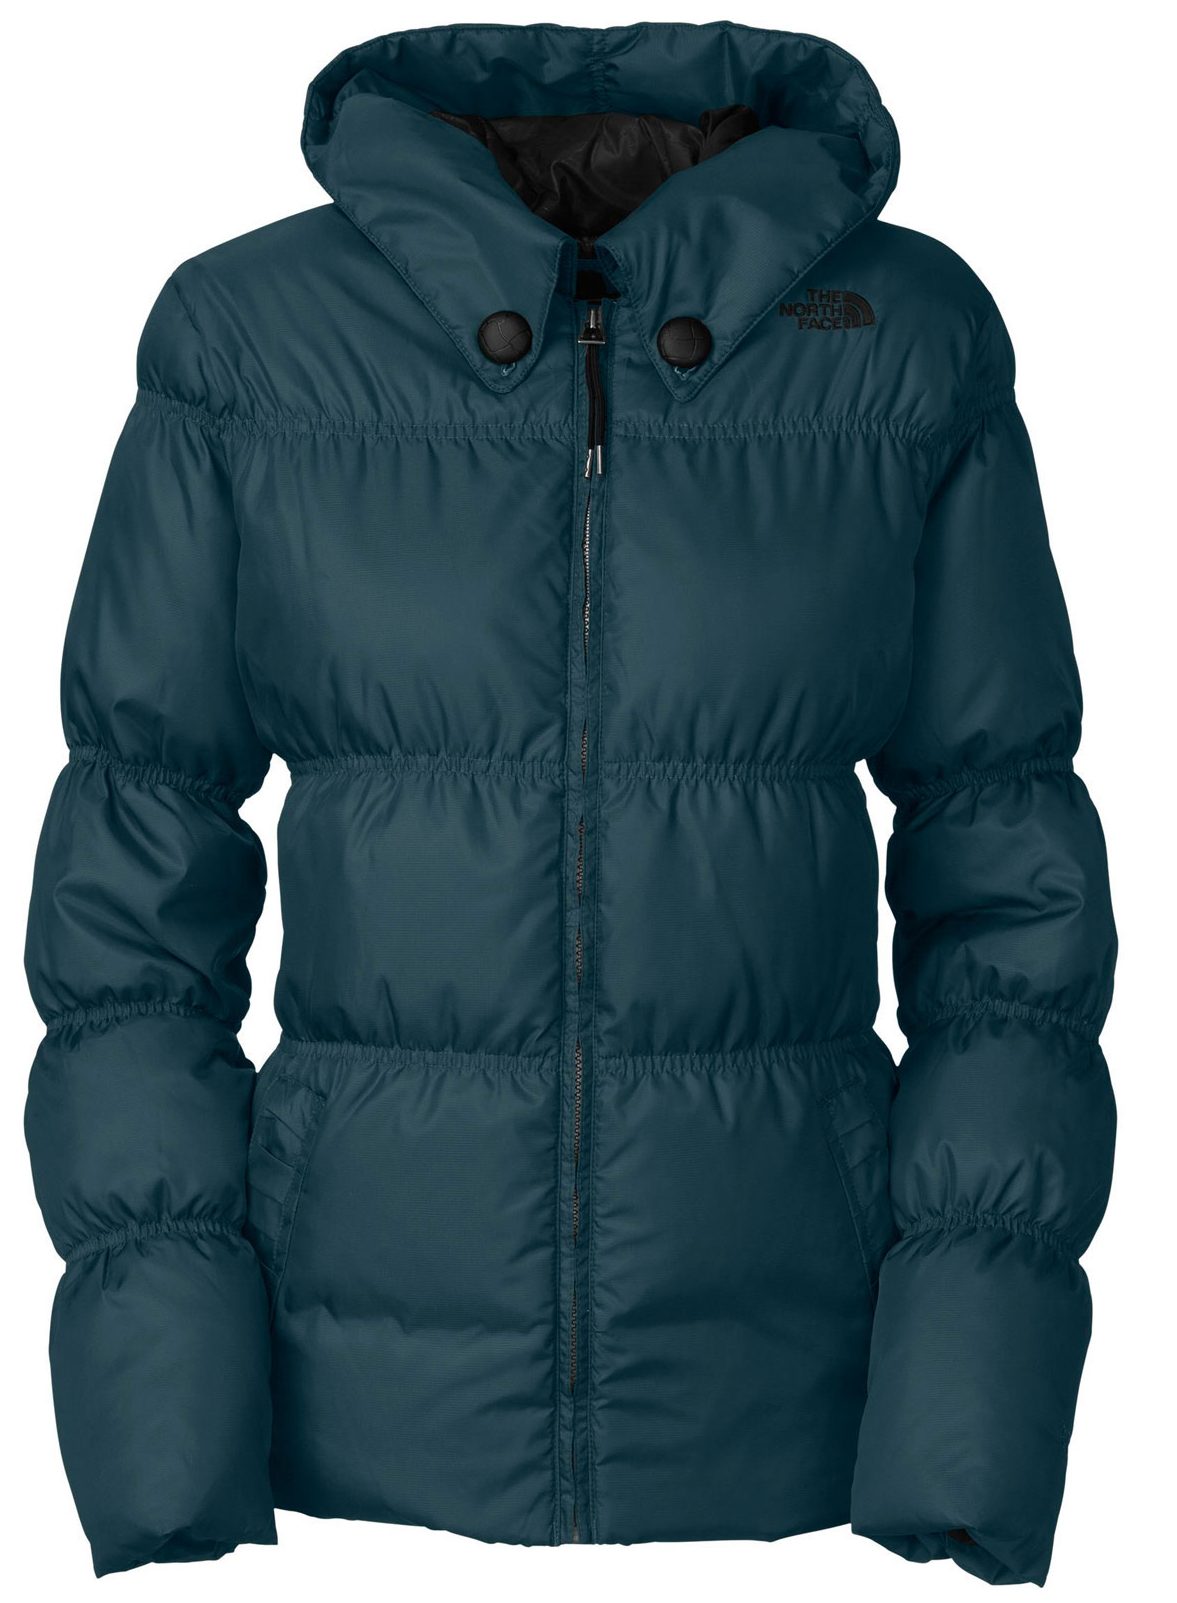 "Ski A street-styled, lightweight down jacket designed for sunny, spring-day ripping. Key Features of The North Face Totally Down Ski Jacket: Avg Weight: 700 g (24.69 oz) Center back: 26"" Fabric: shell: mini-ripstop taffeta Lining: taffeta Insulation: 550 fill down Water-resistant, breathable Adjustable fixed hood Handwarmer zip pockets Internal media security pocket Snap-back powder skirt with elastic gripper Adjustable hem system - $160.95"